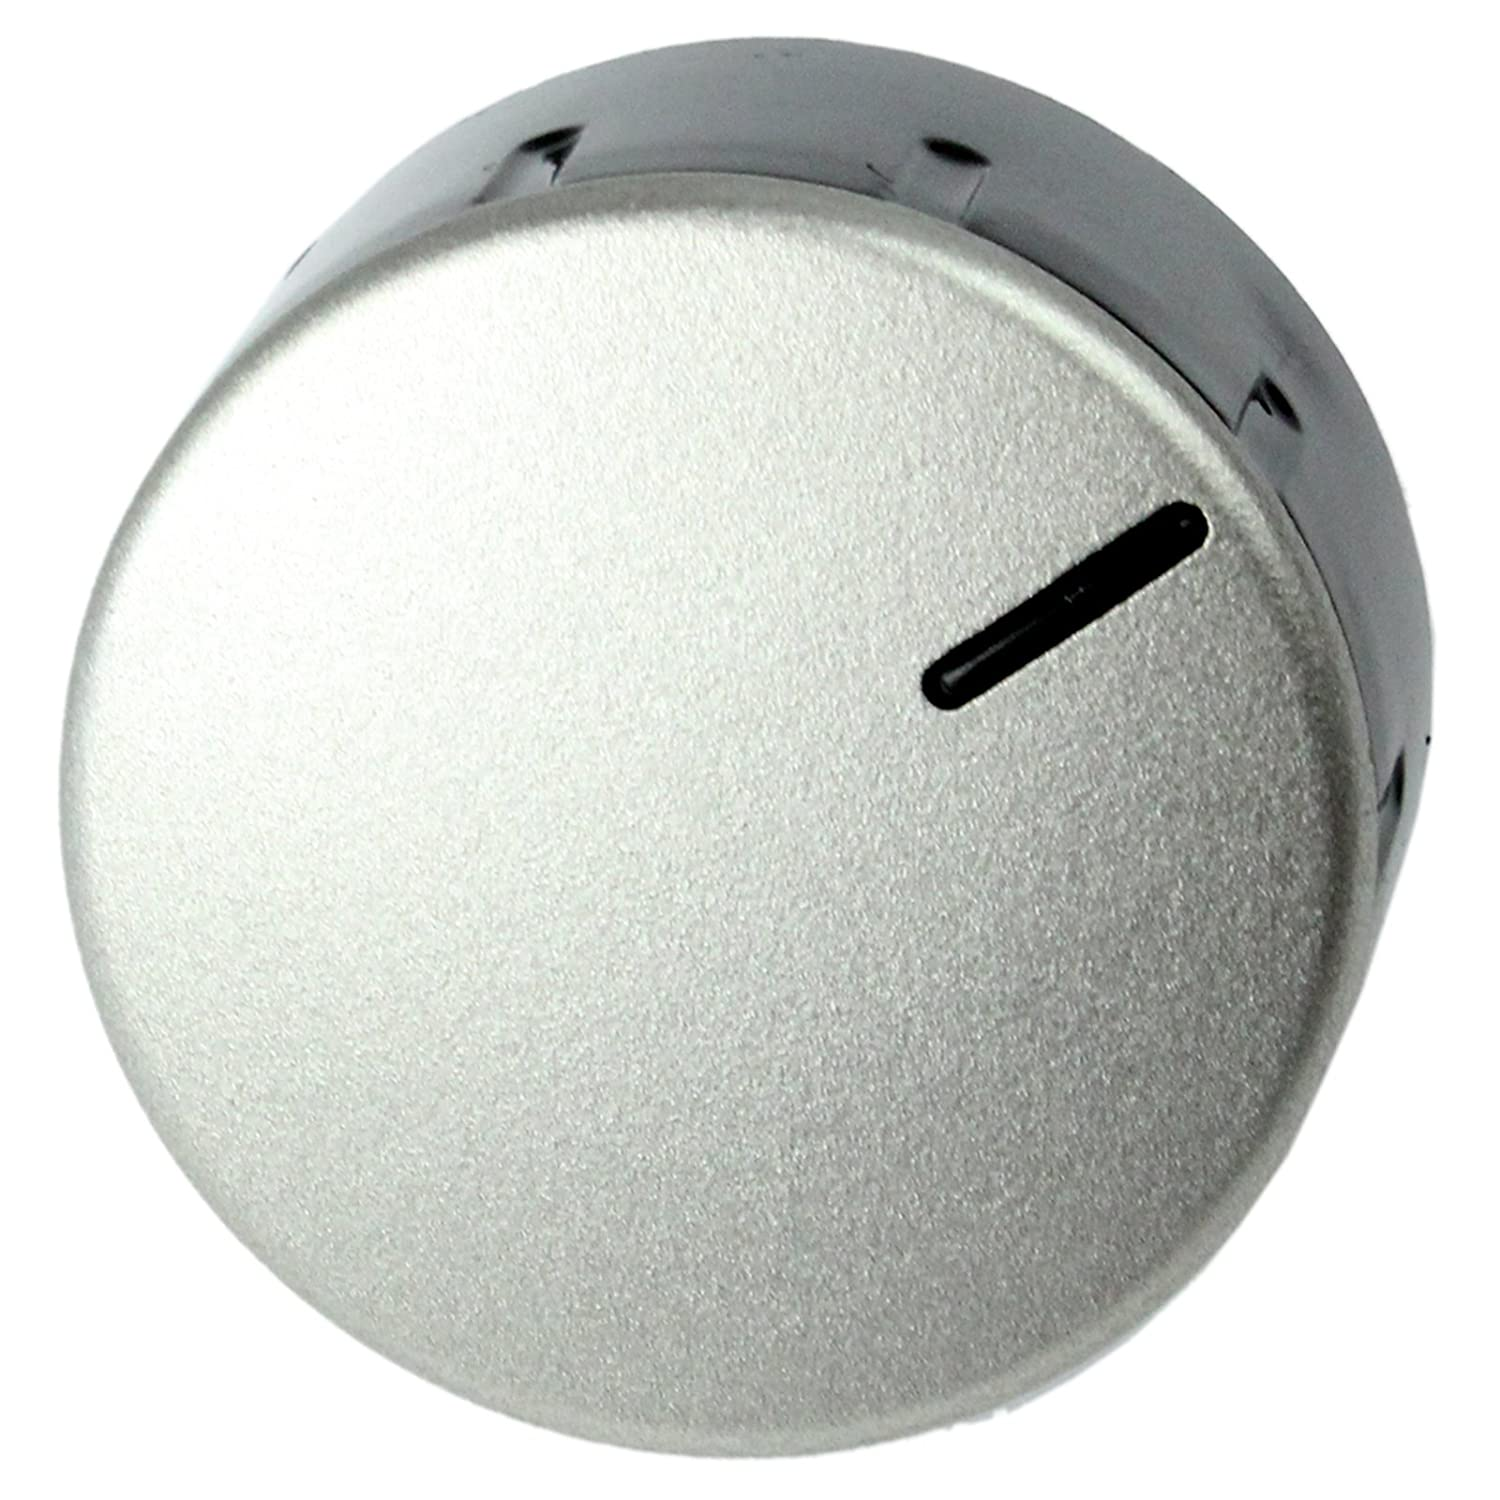 Bosch Oven Cooker Hob Control Knob genuine part number 604551 [Energy Class A+++] Bosch Group 604551